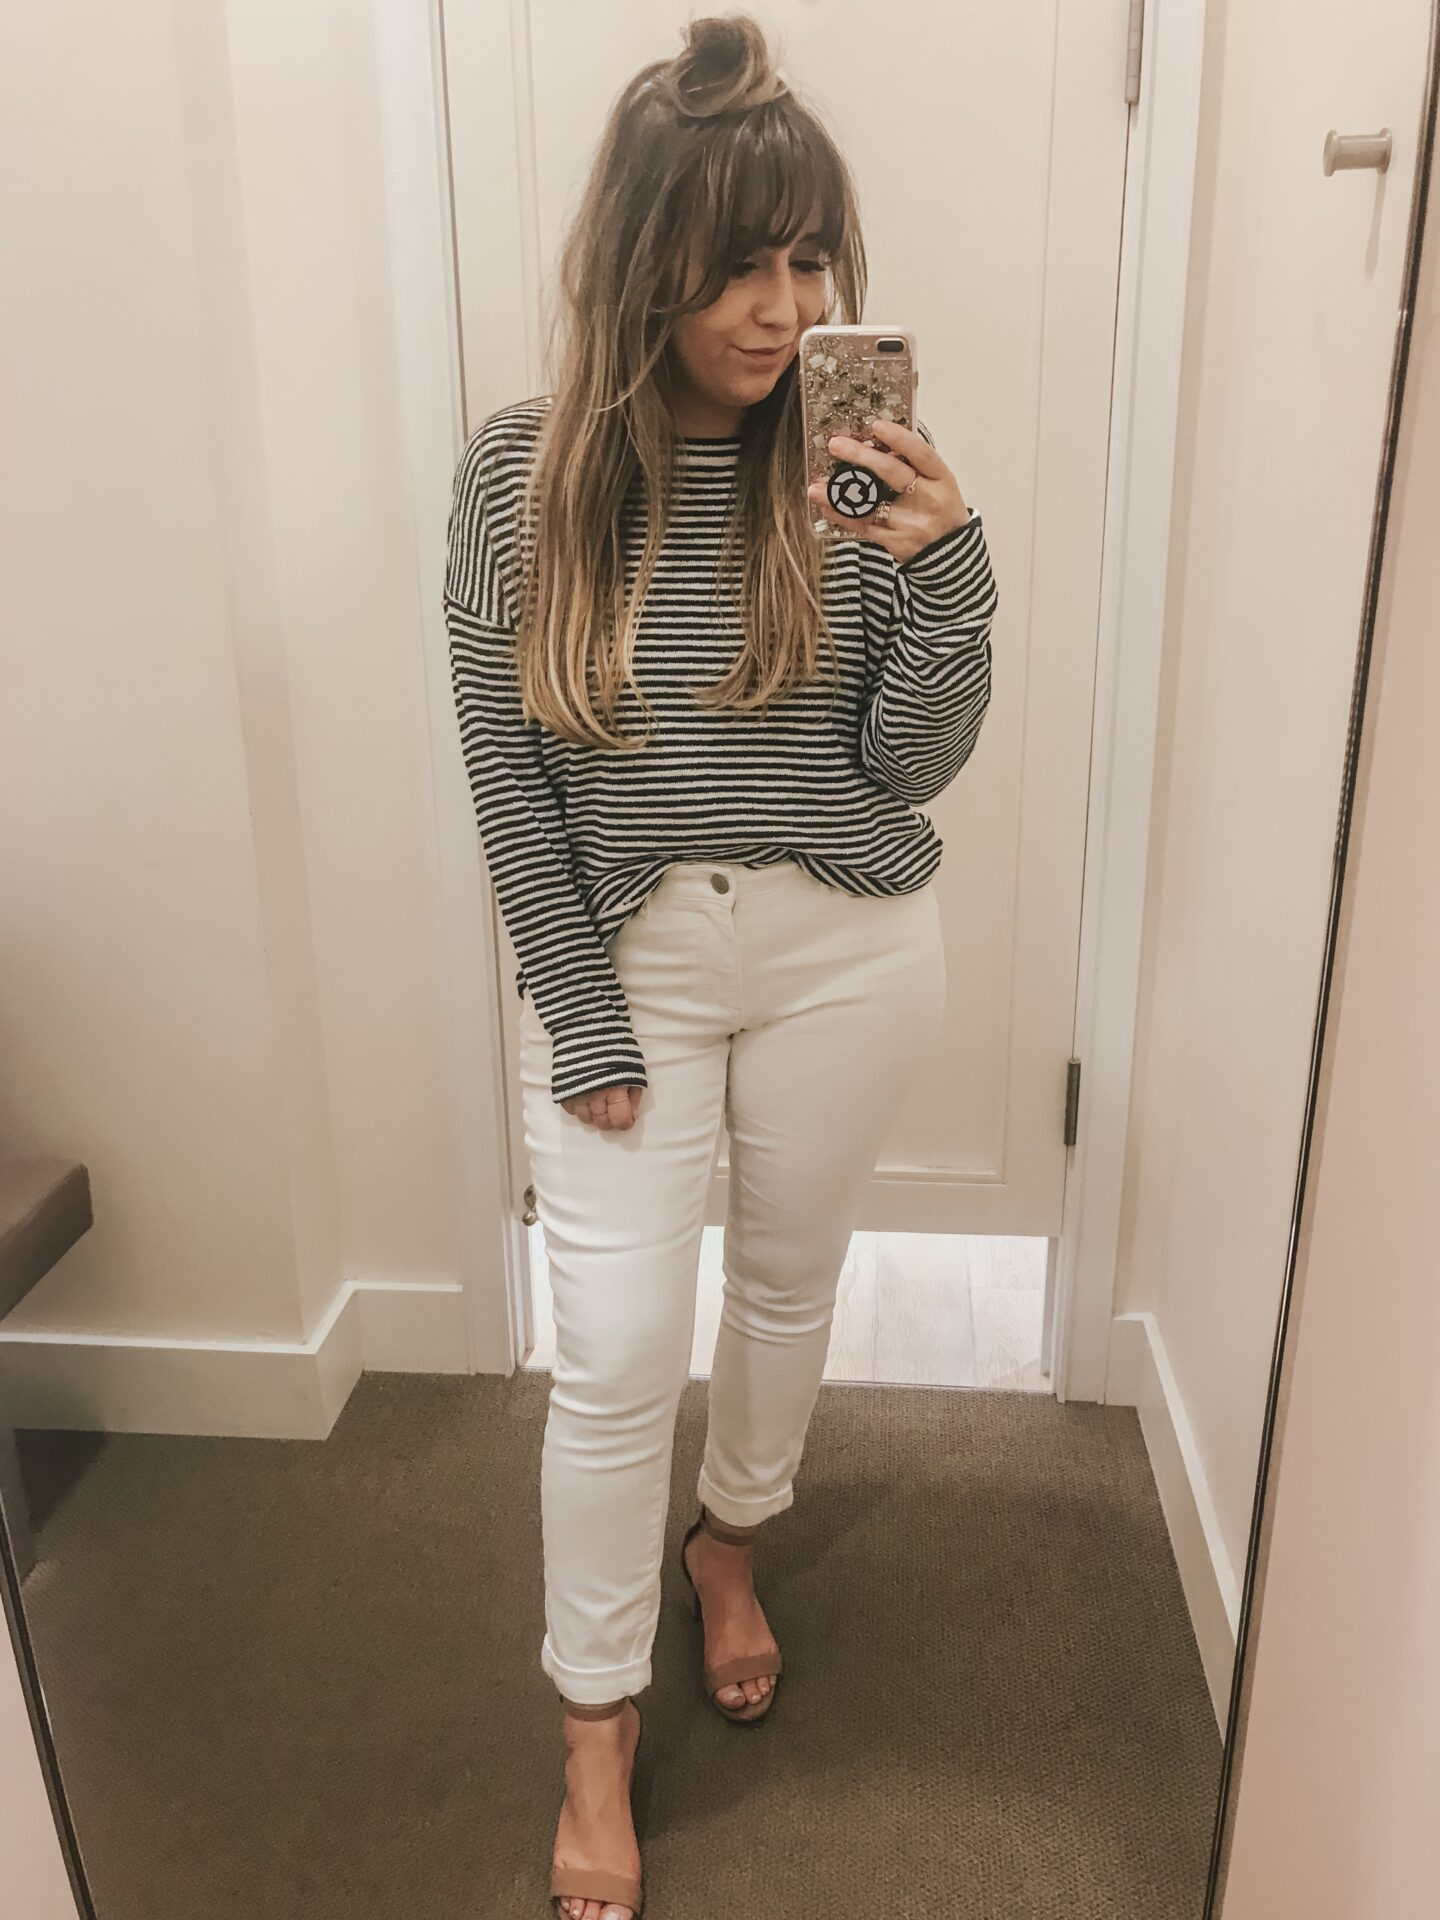 LOFT Spring - Striped sweater and white jeans